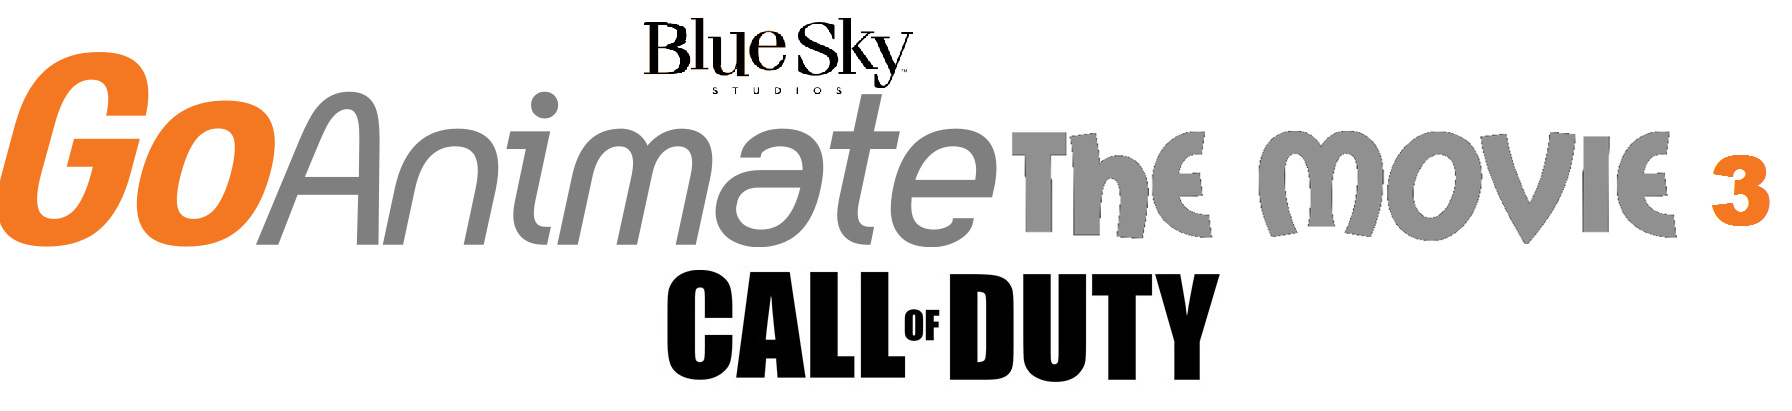 GoAnimate The Movie 3: Call of Duty